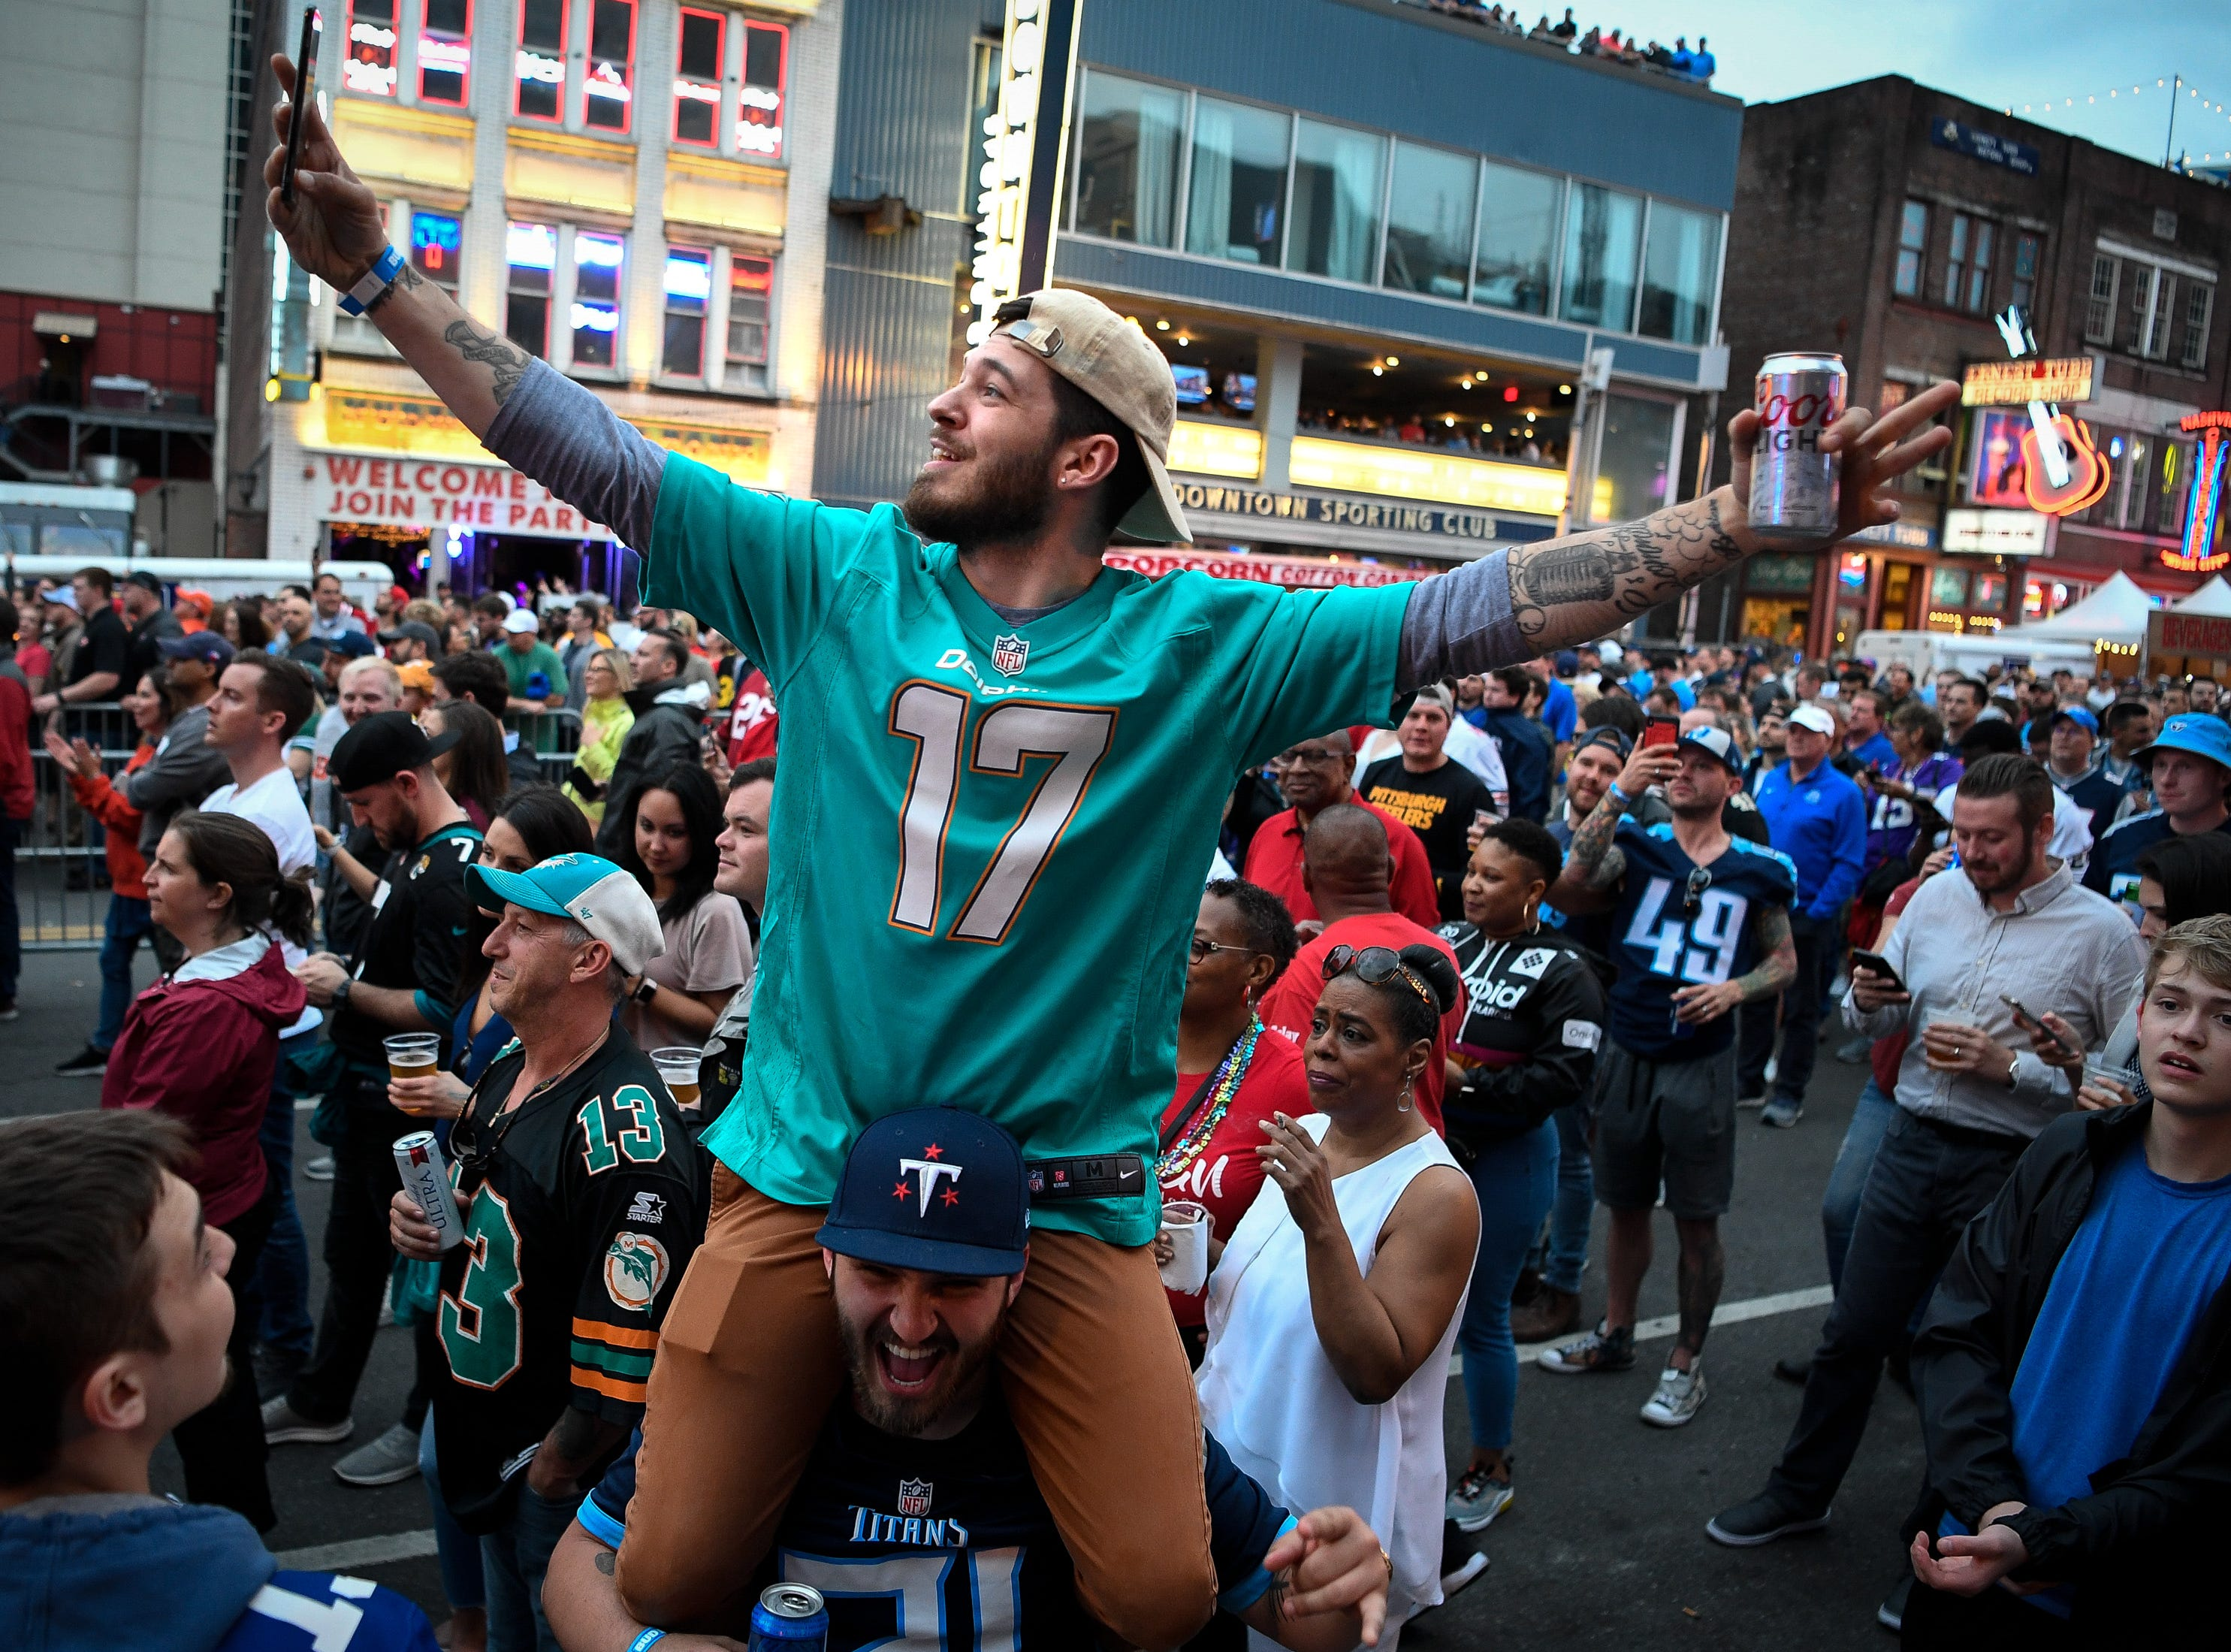 Michael Palella, of Albany, N.Y., cheers while on the shoulders of his brother, Brendan Palella, of Nashville, during the 2019 NFL Draft on Broadway in Nashville, Tenn., Thursday, April 25, 2019.